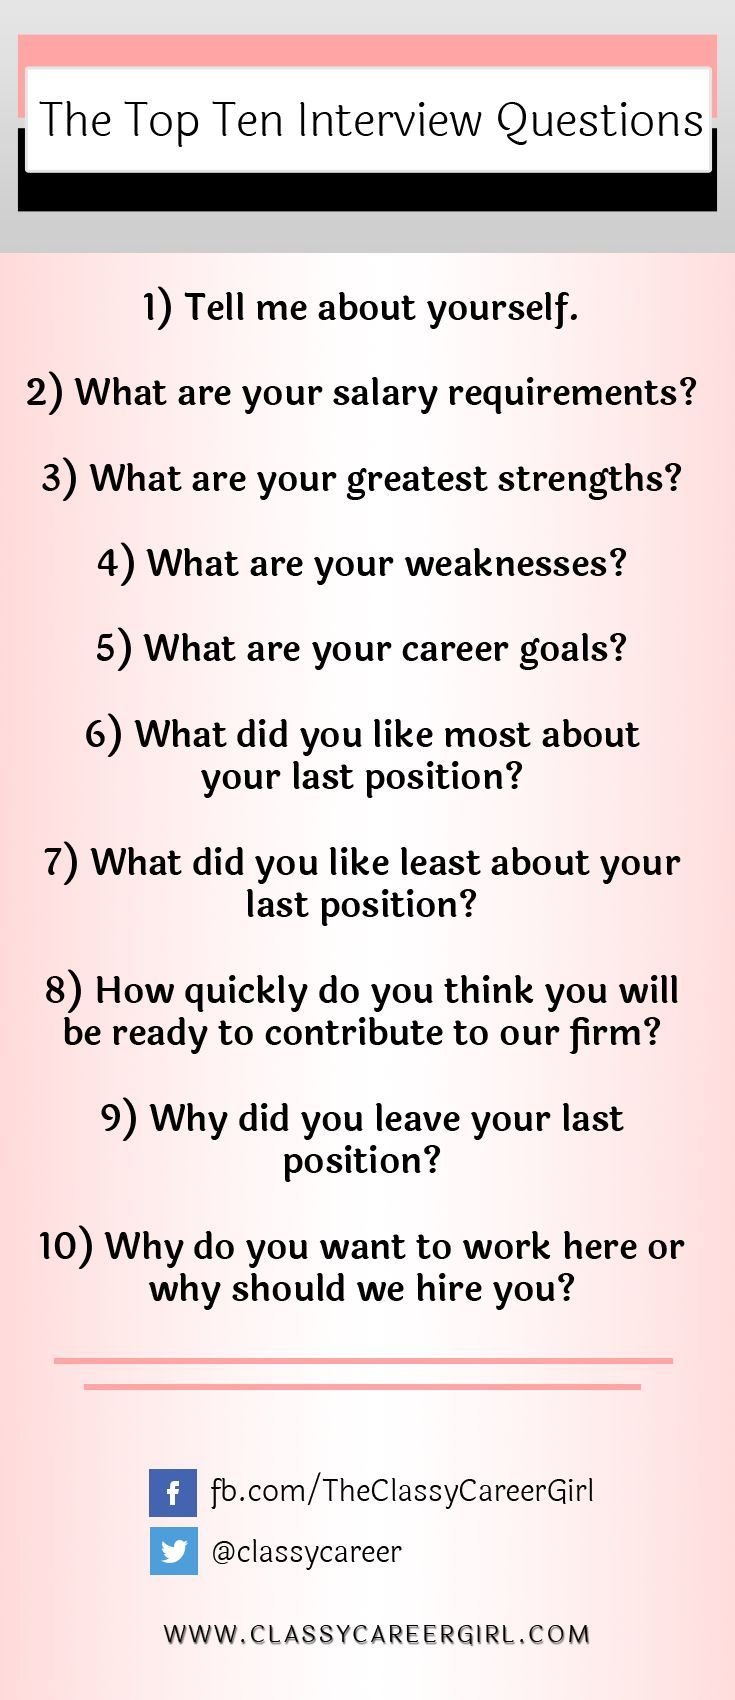 prepare questions to ask the interviewer at your mba interview